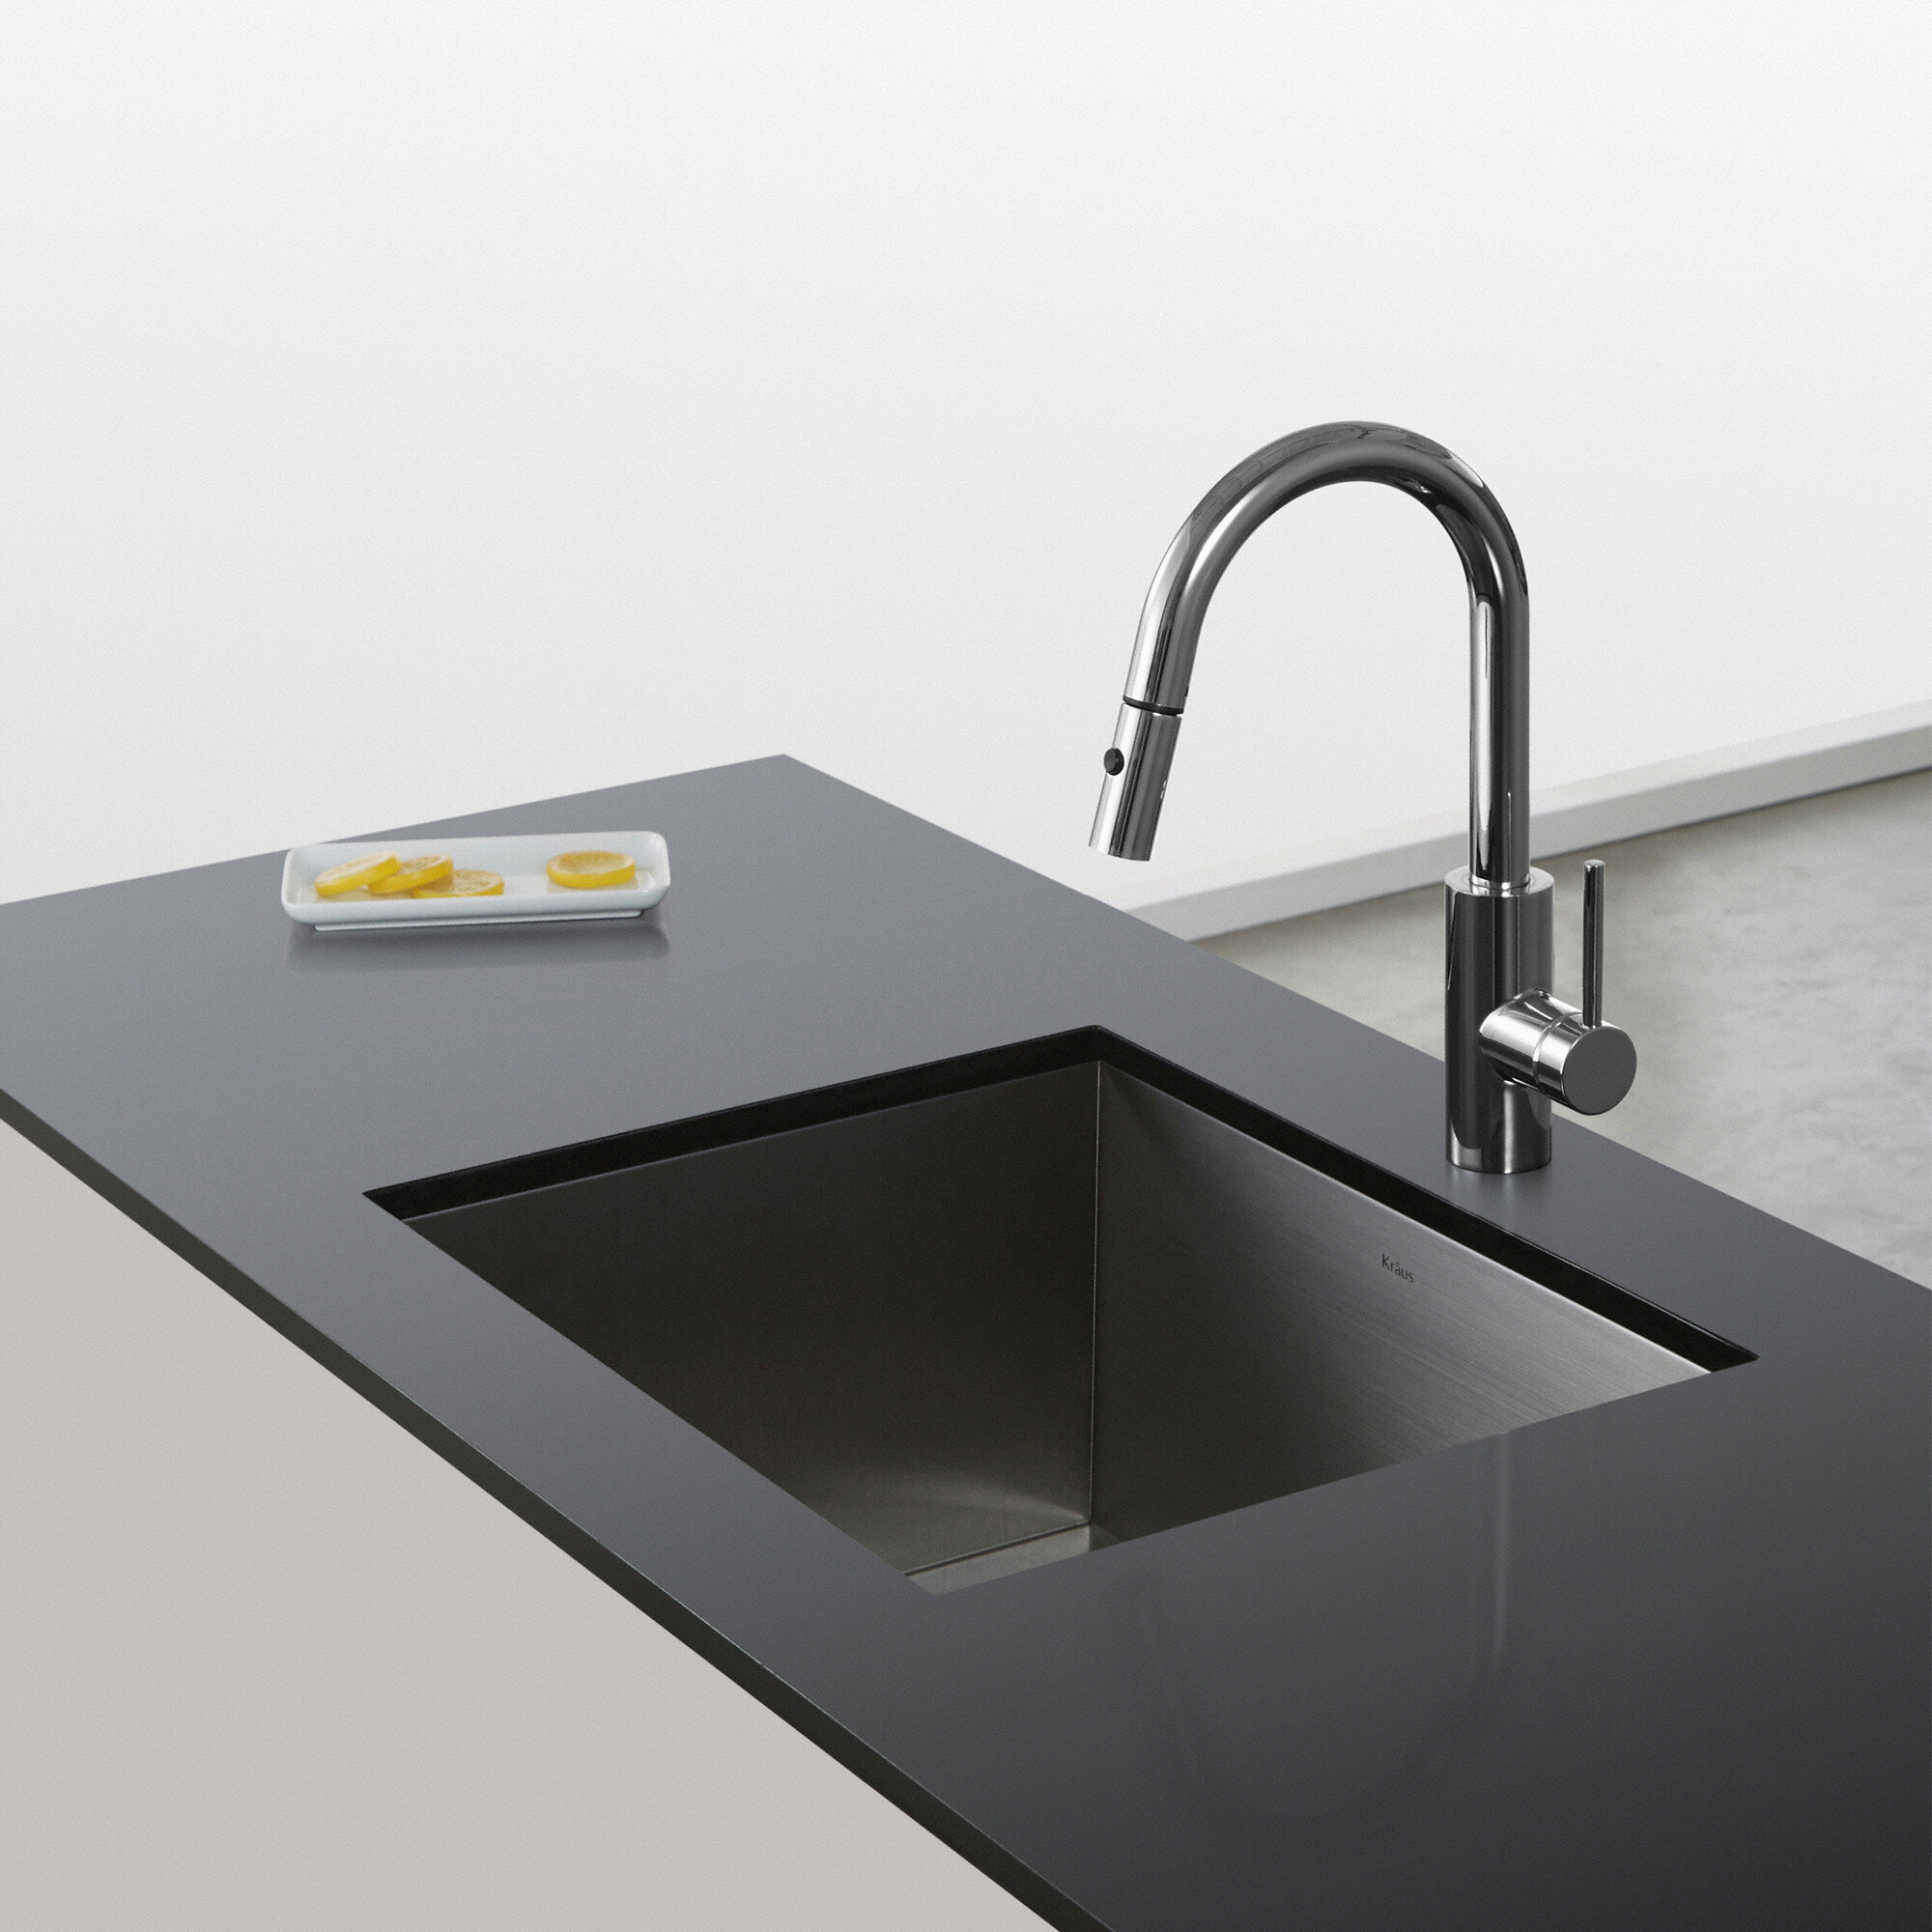 Kraus Oletto Pull Down Single Handle Kitchen Faucet & Reviews